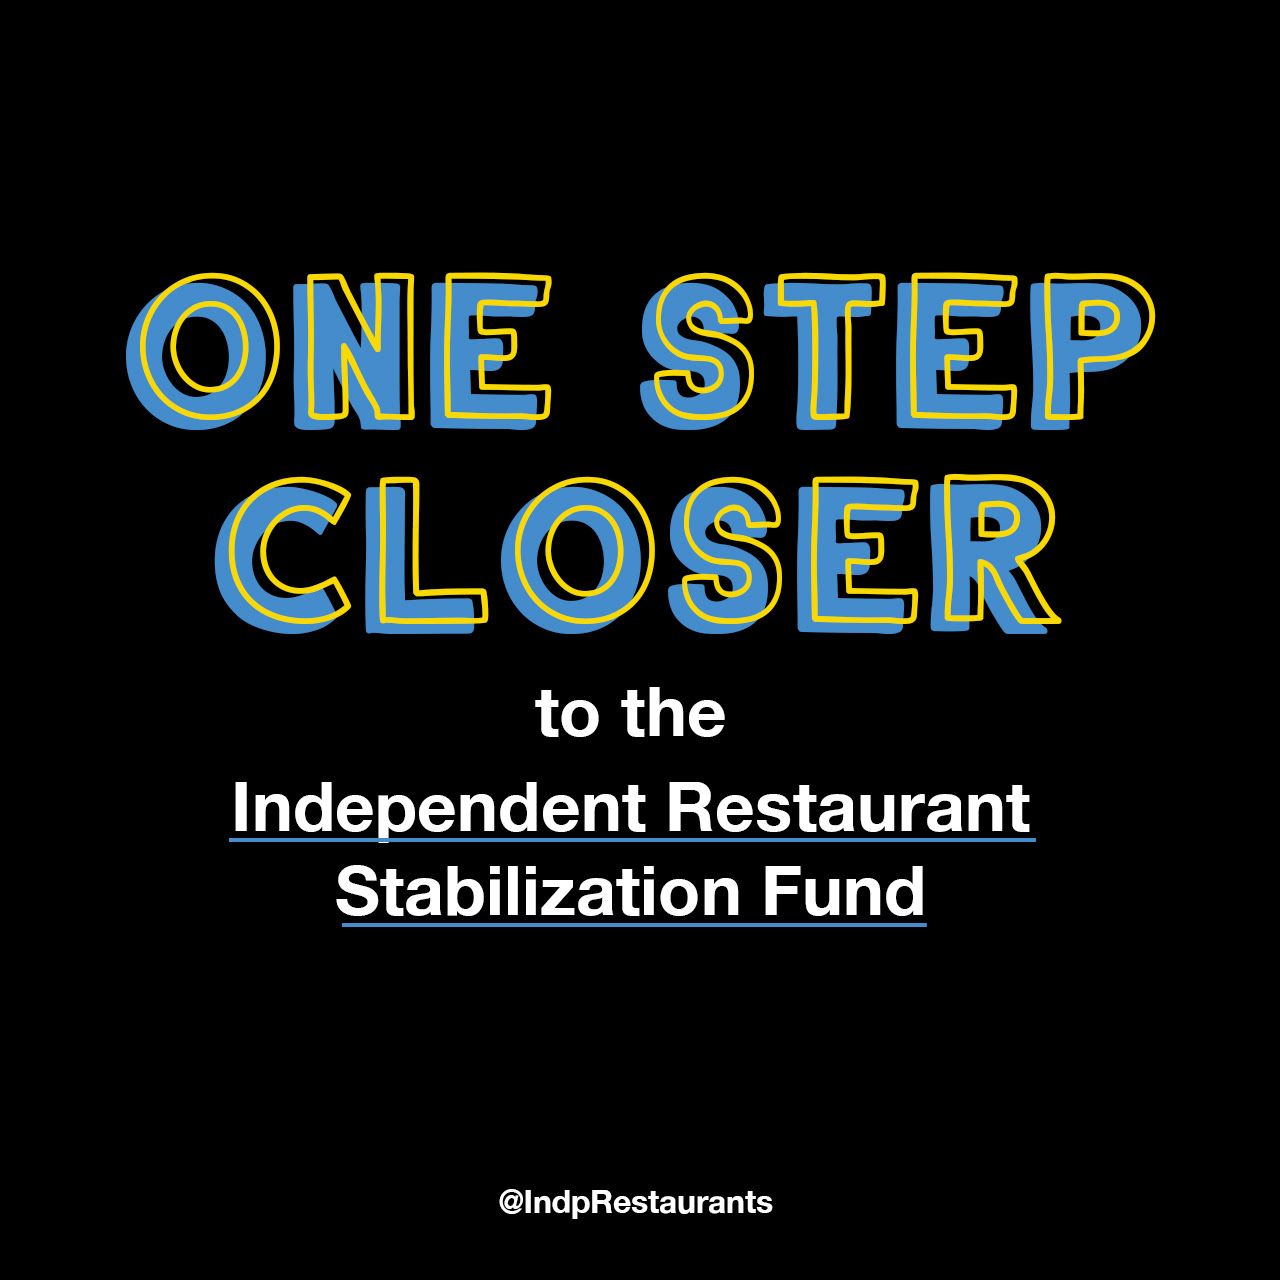 One step closer to the independent restaurant stabilization fund